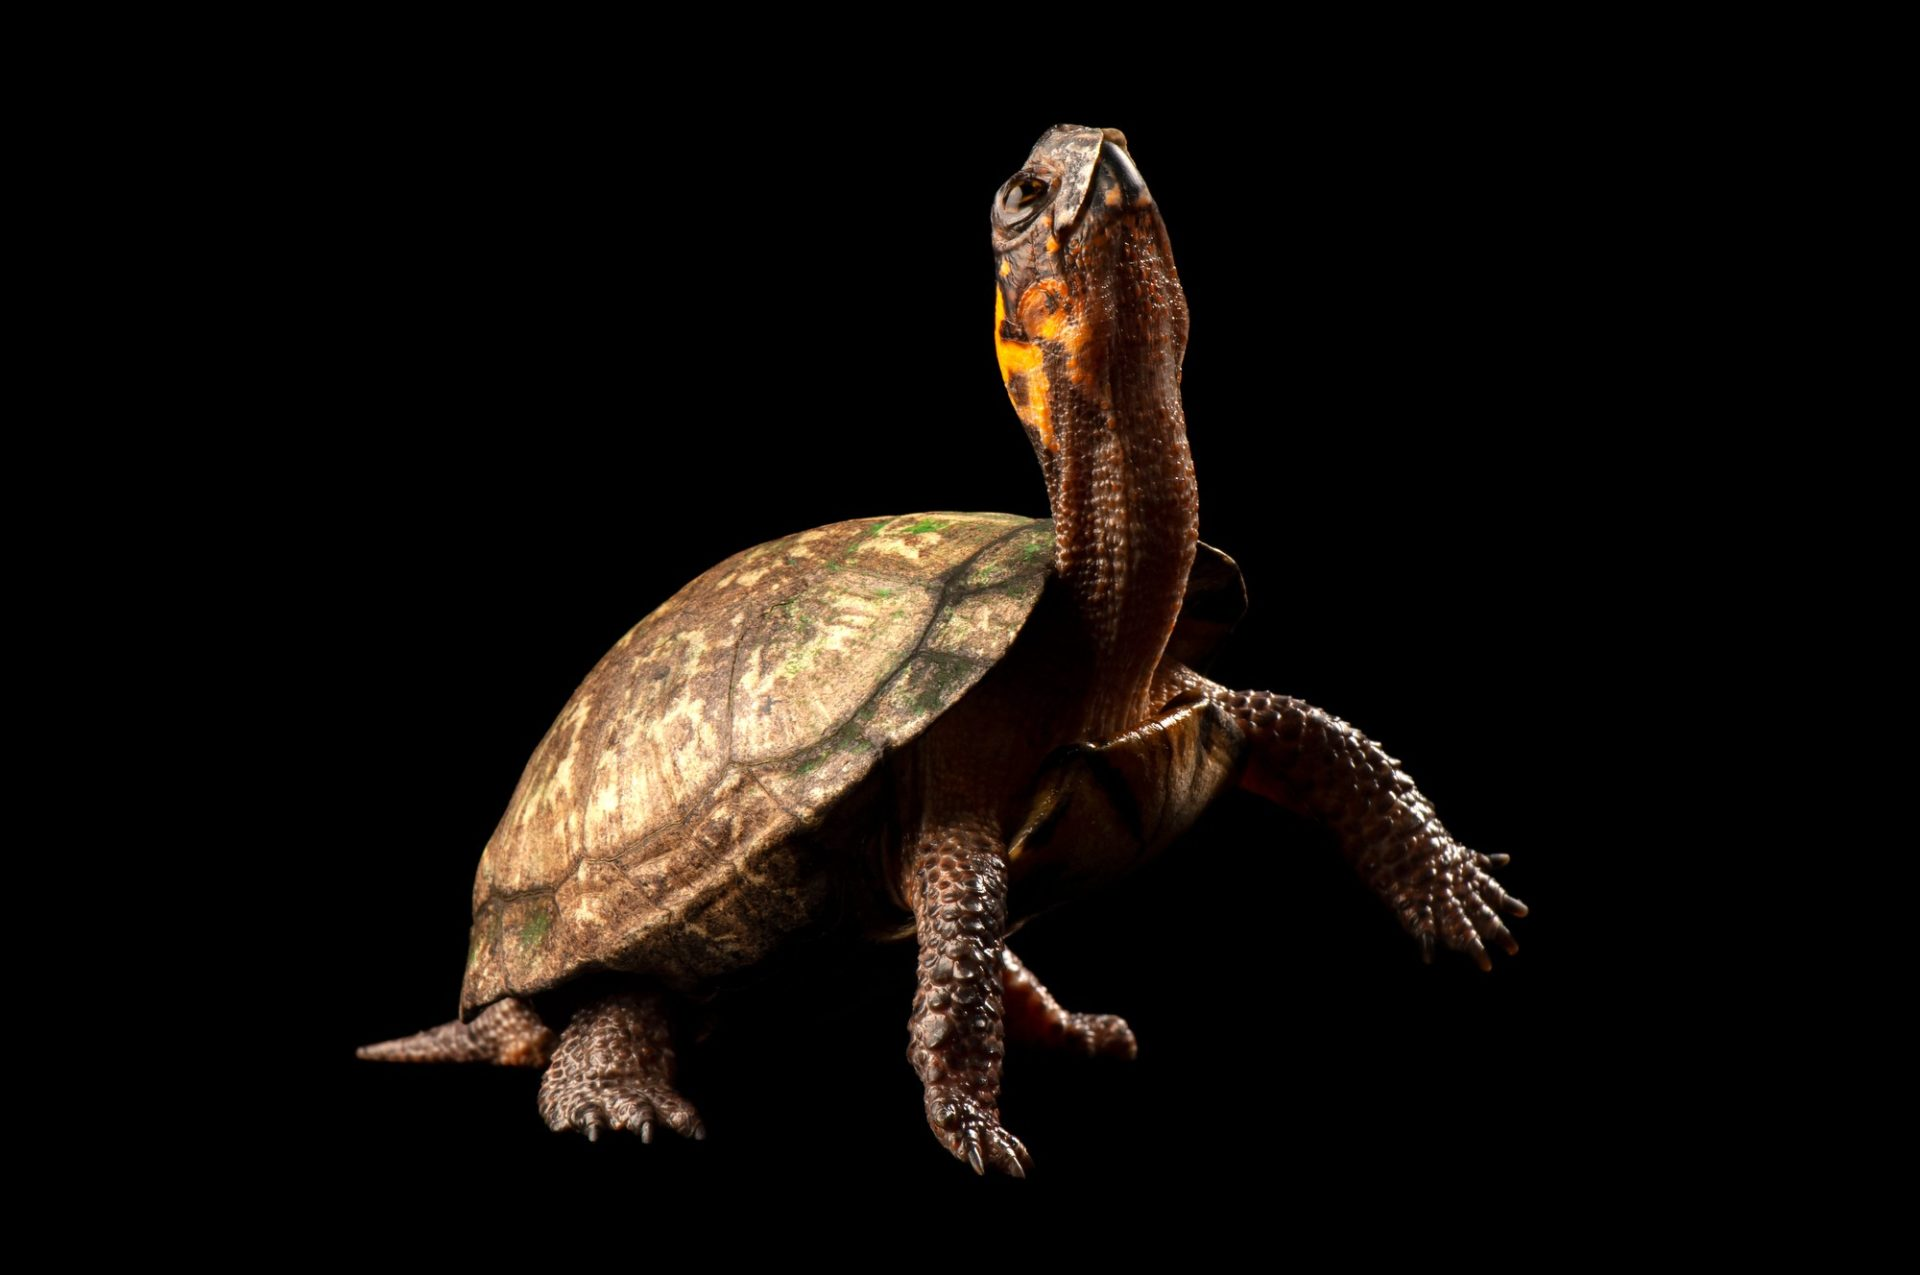 A bog turtle (Glyptemys muhlenbergii) an endangered (IUCN) and federally threatened species at the Atlanta Zoo.